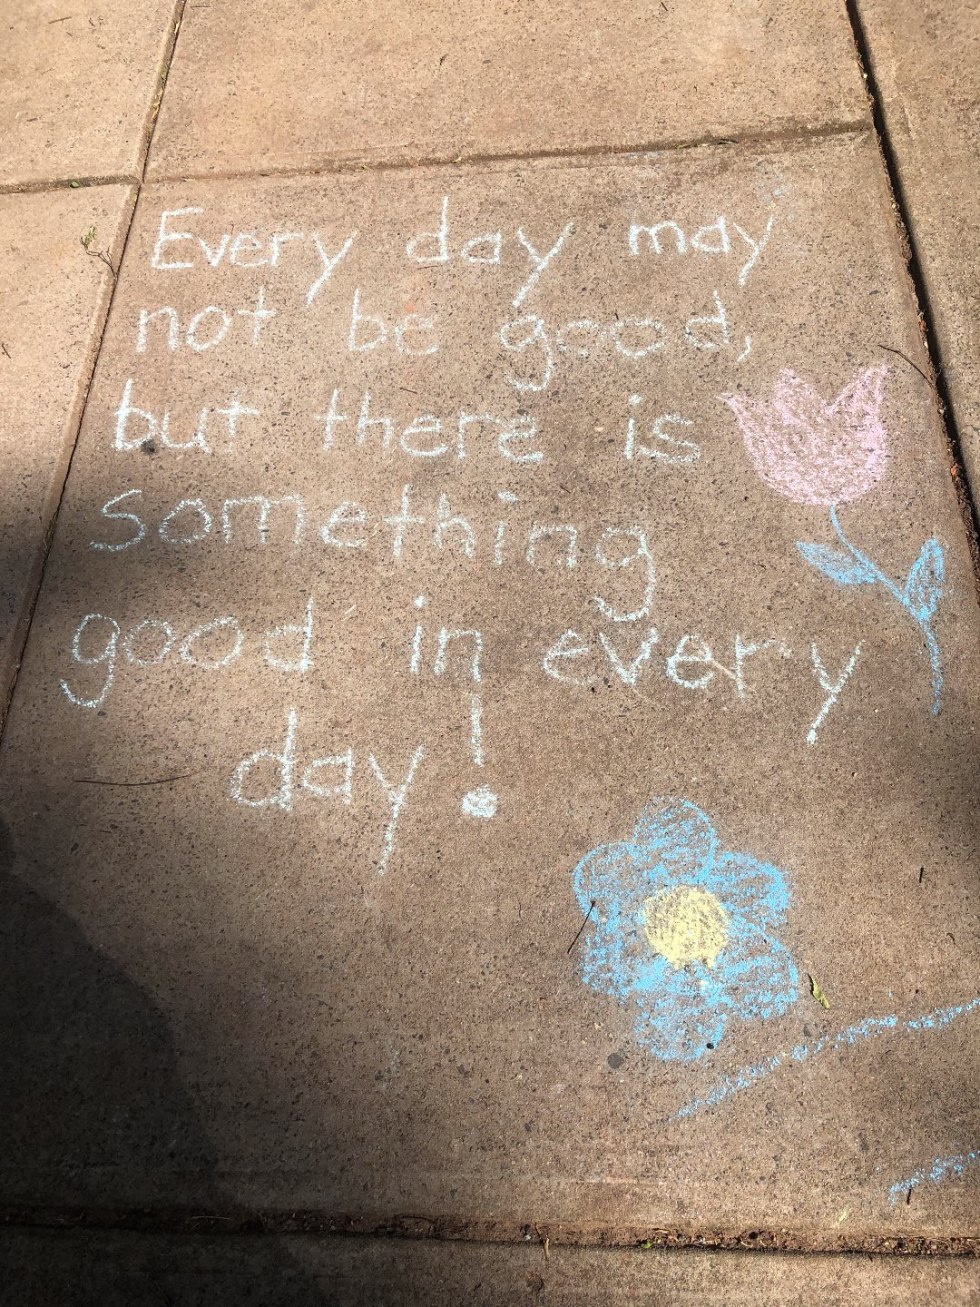 How to Make the Most of Your Time by popular N.C. lifestyle blog, I'm Fixin' To: image of a quote written in chalk on a sidewalk.